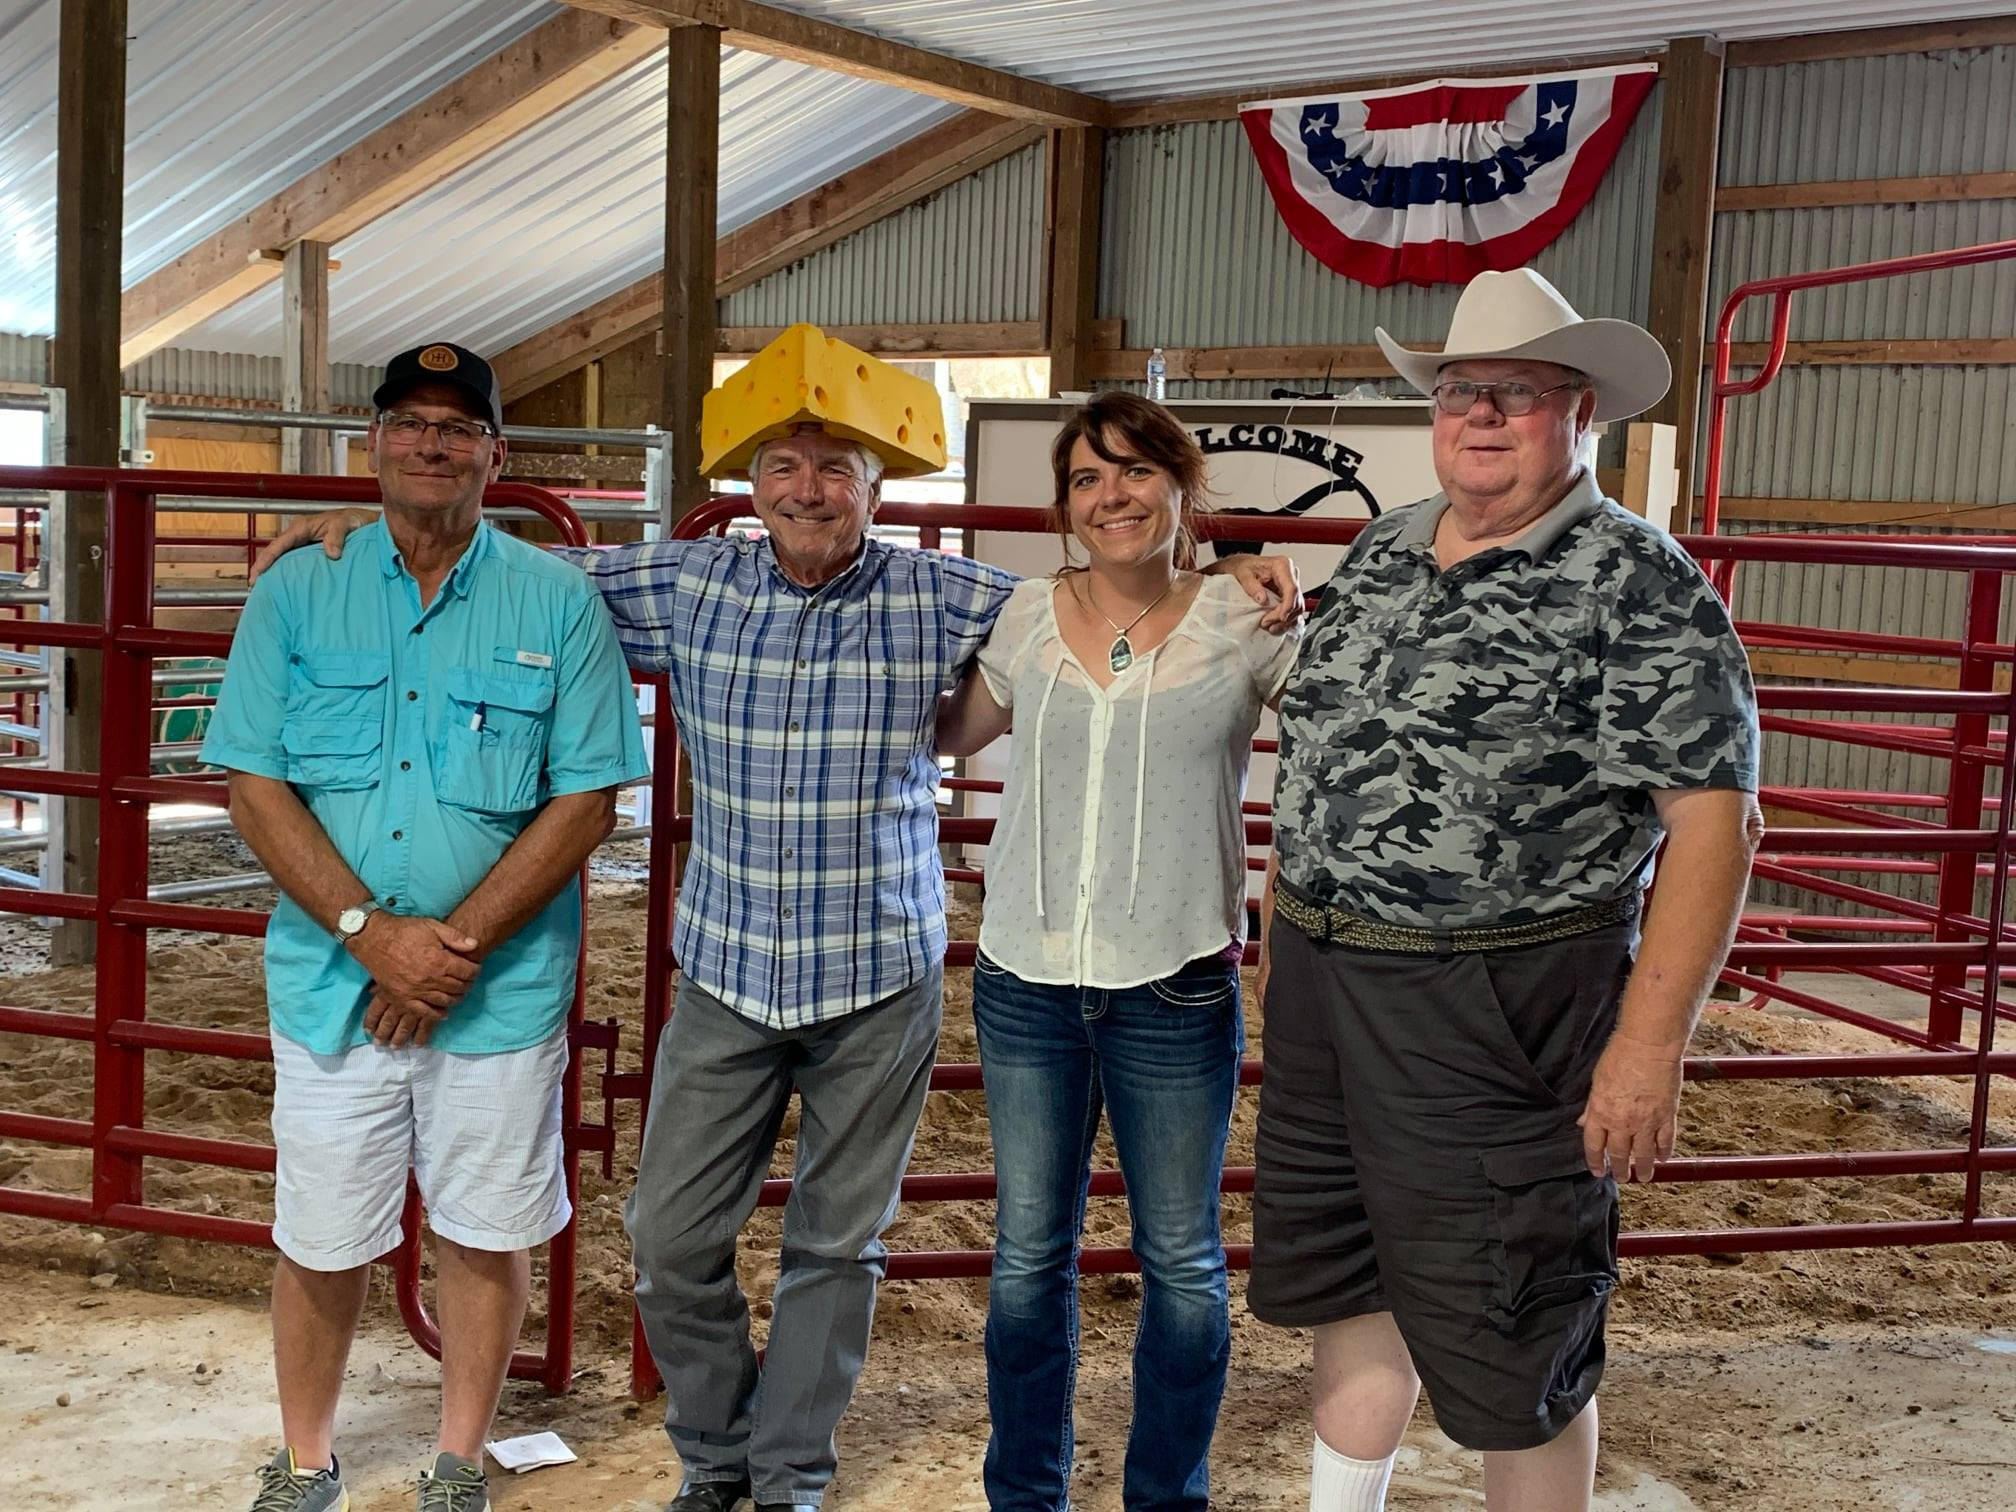 GNTLA Futurity Judges Hired Hand customers Jay Wachter, Sunhaven Farm and Dale Metz, FHR Longhorns with Melissa Boerst, Silver Summit Ranch and Dick Lowe, Triple R Longhorns